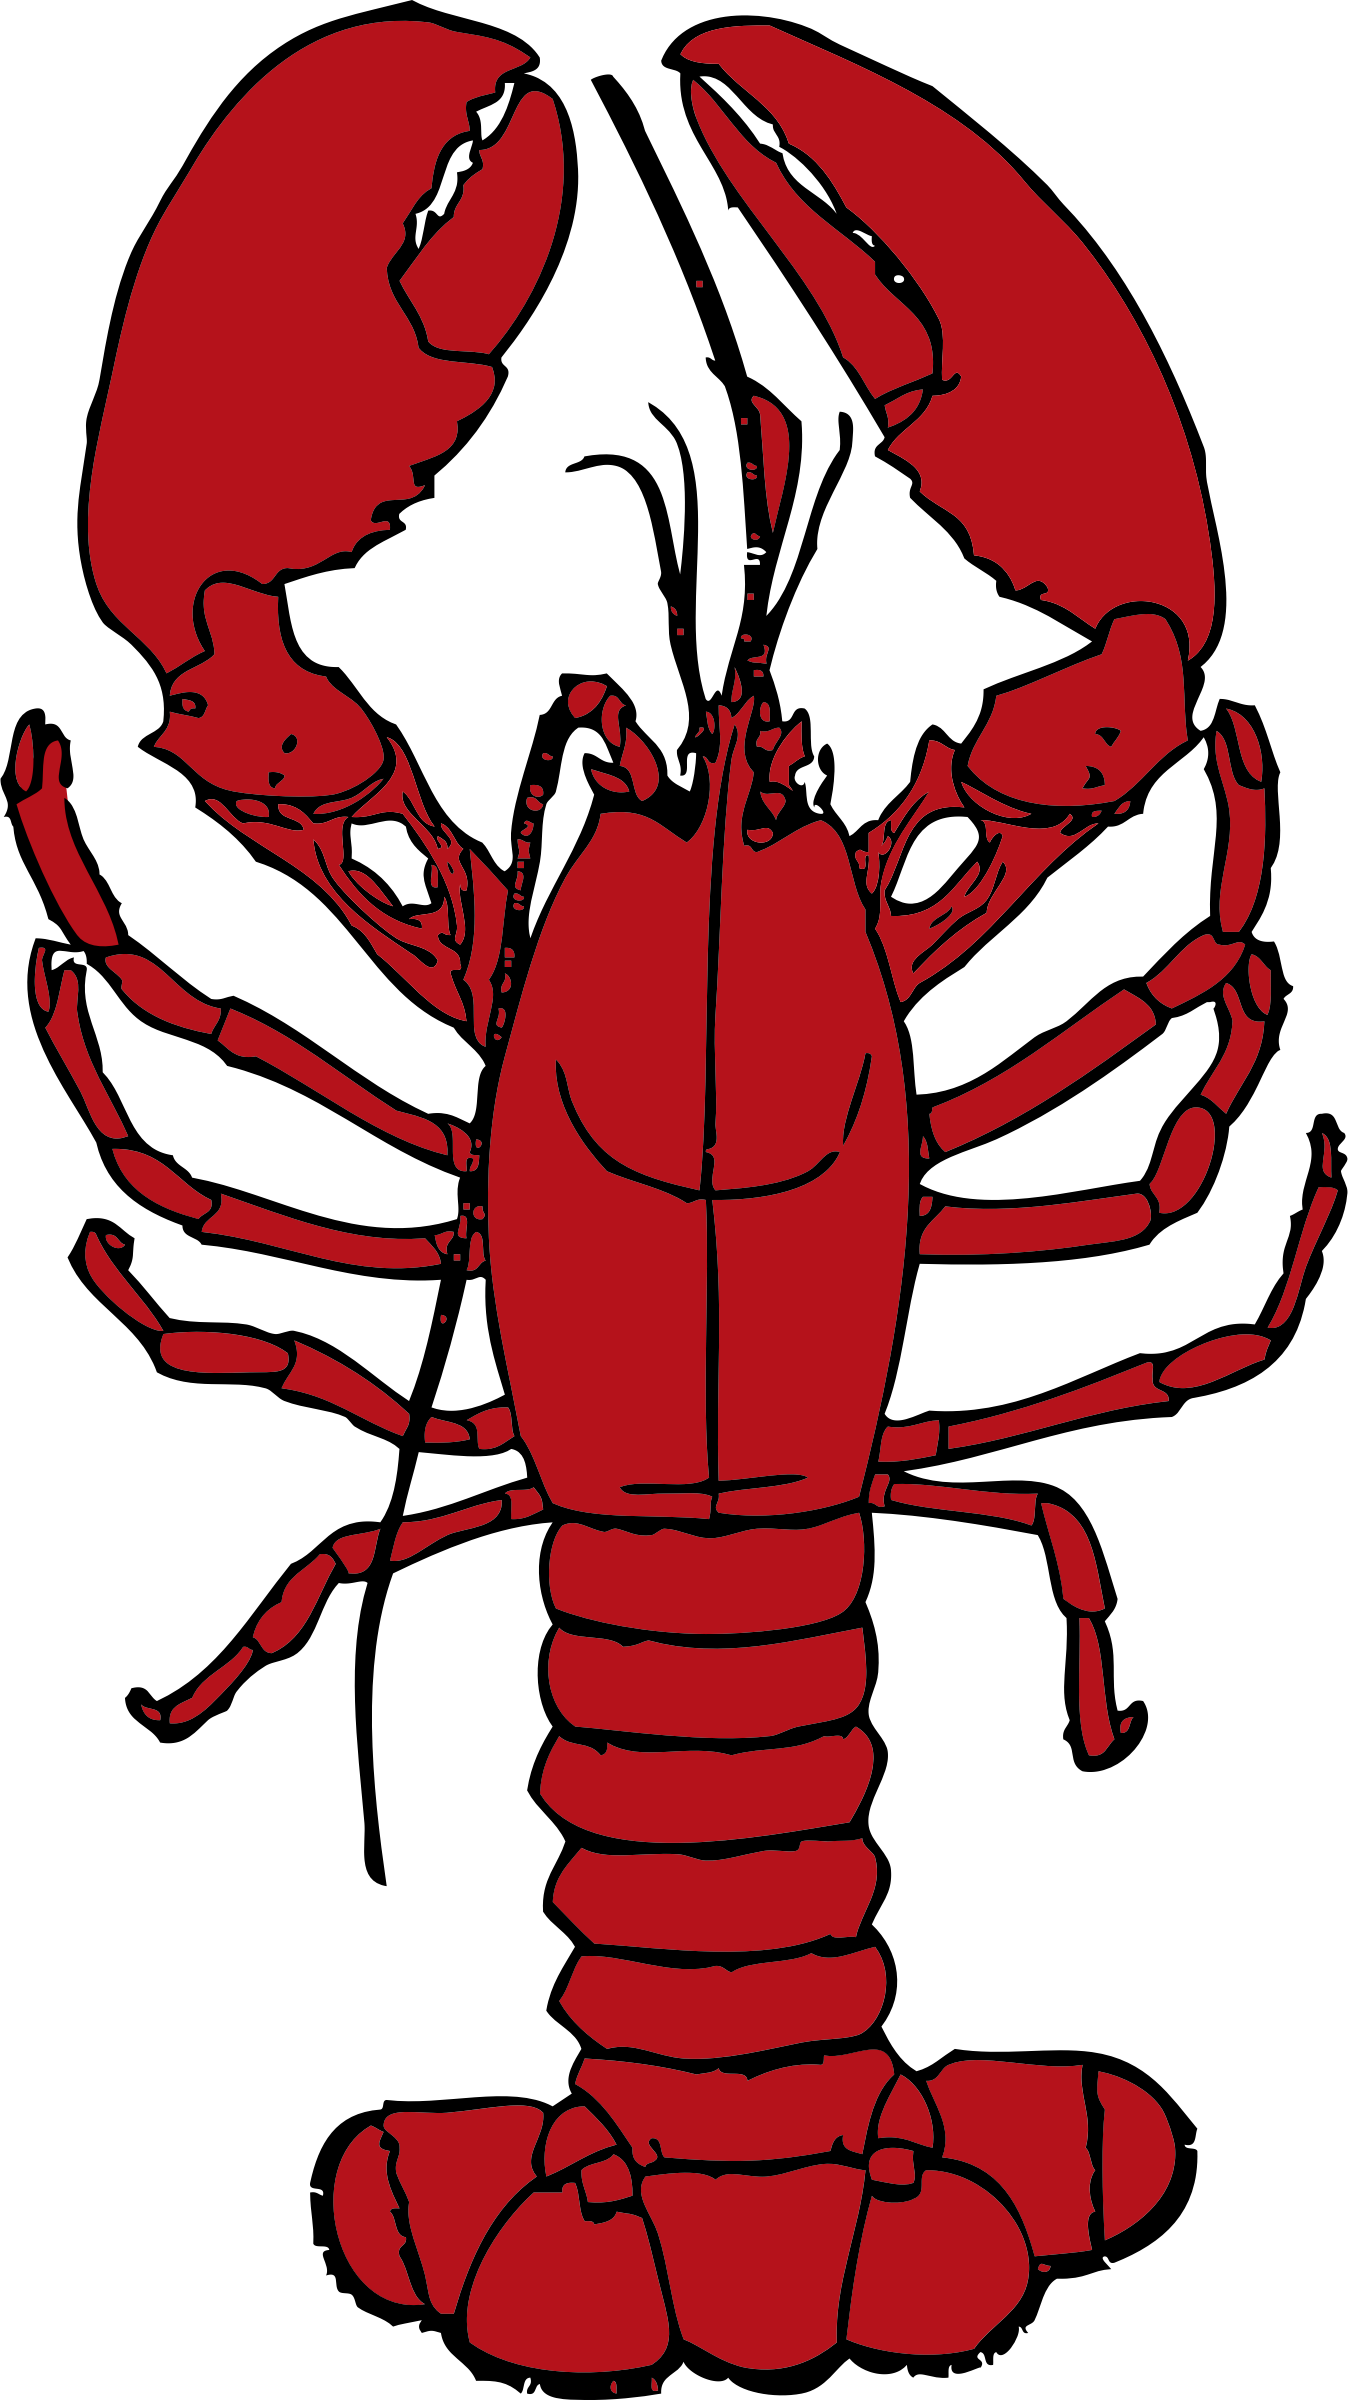 lobster love clipart 20 free Cliparts | Download images on ...